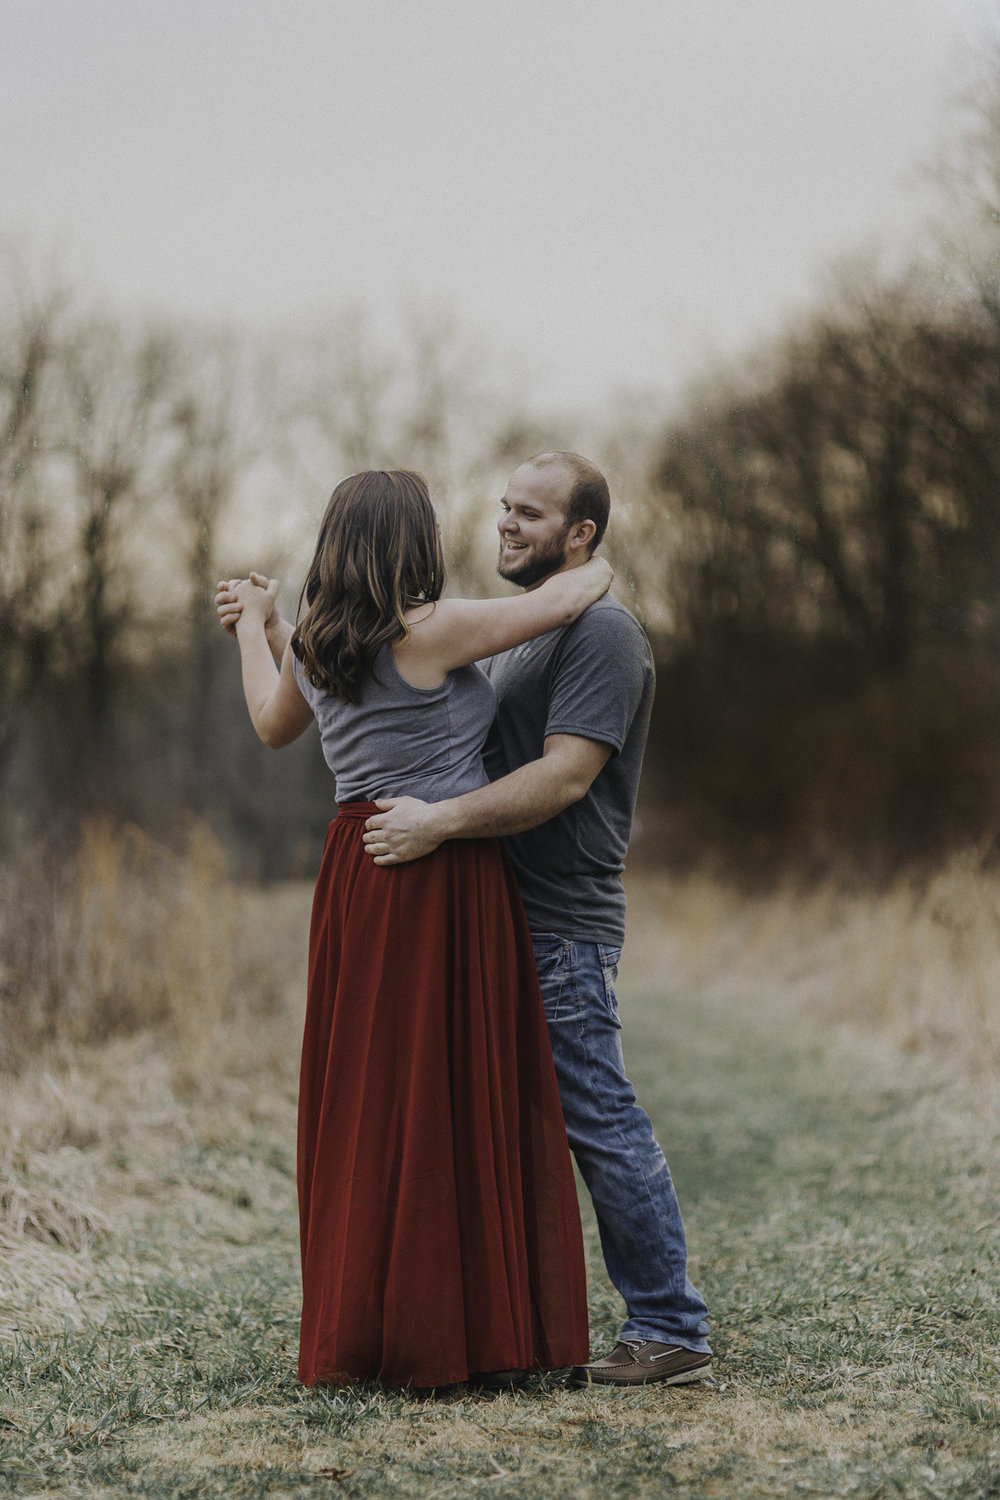 Cate_Ann_Photography_Dayton_Ohio_Wedding_Elopement_And_Engagement_PhotographerIMG_6739.jpg